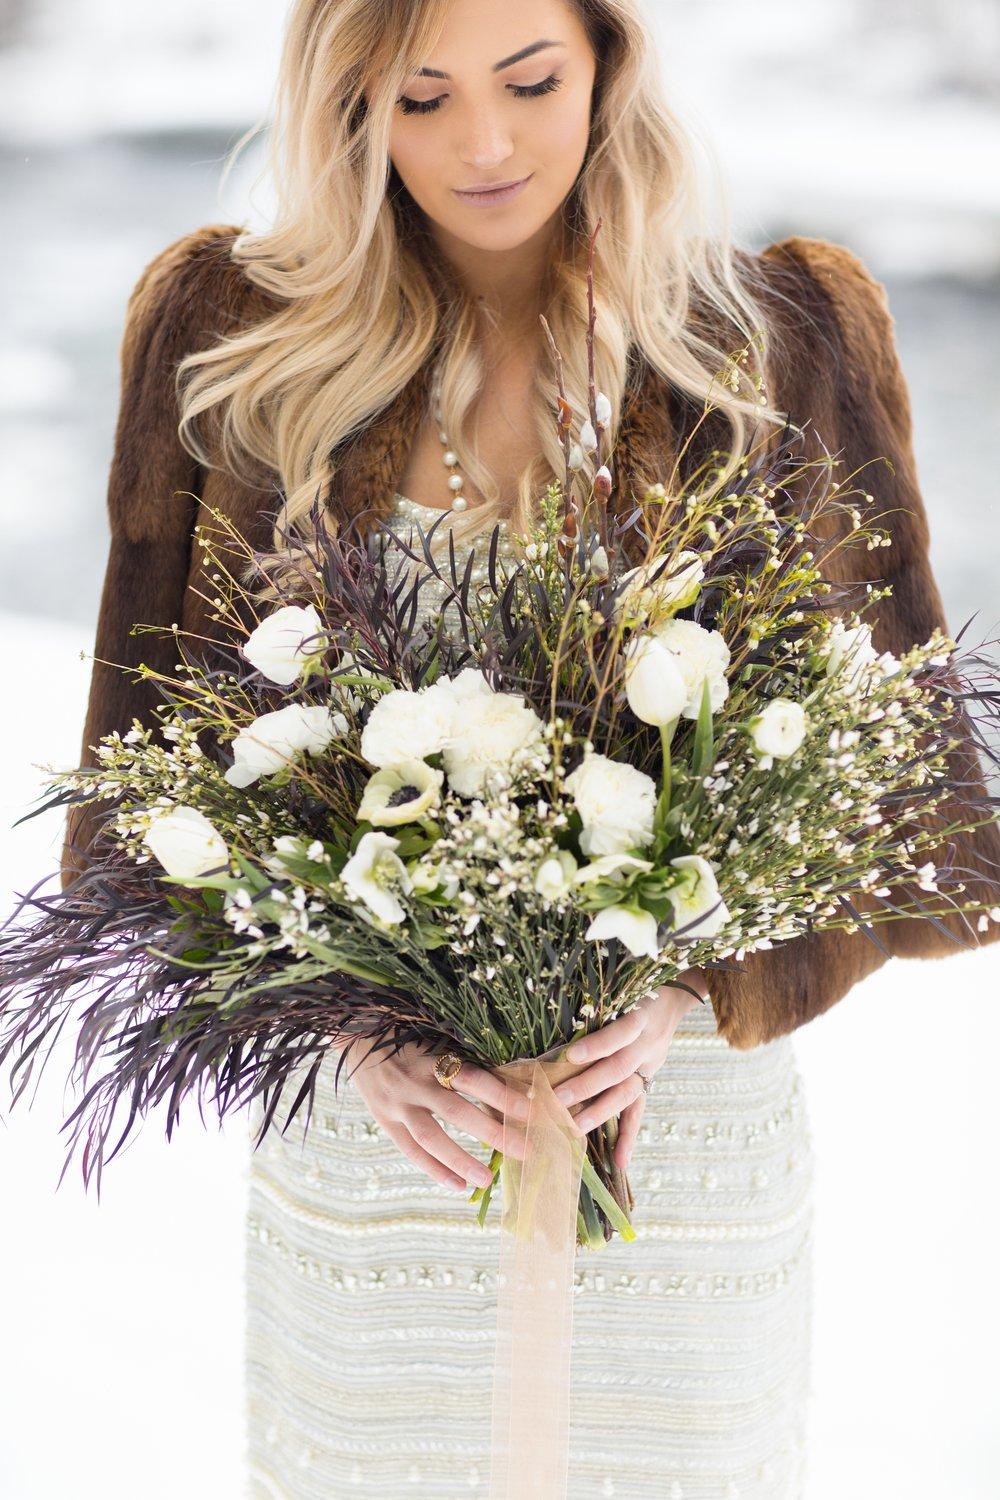 brideand herbouquet main .jpg